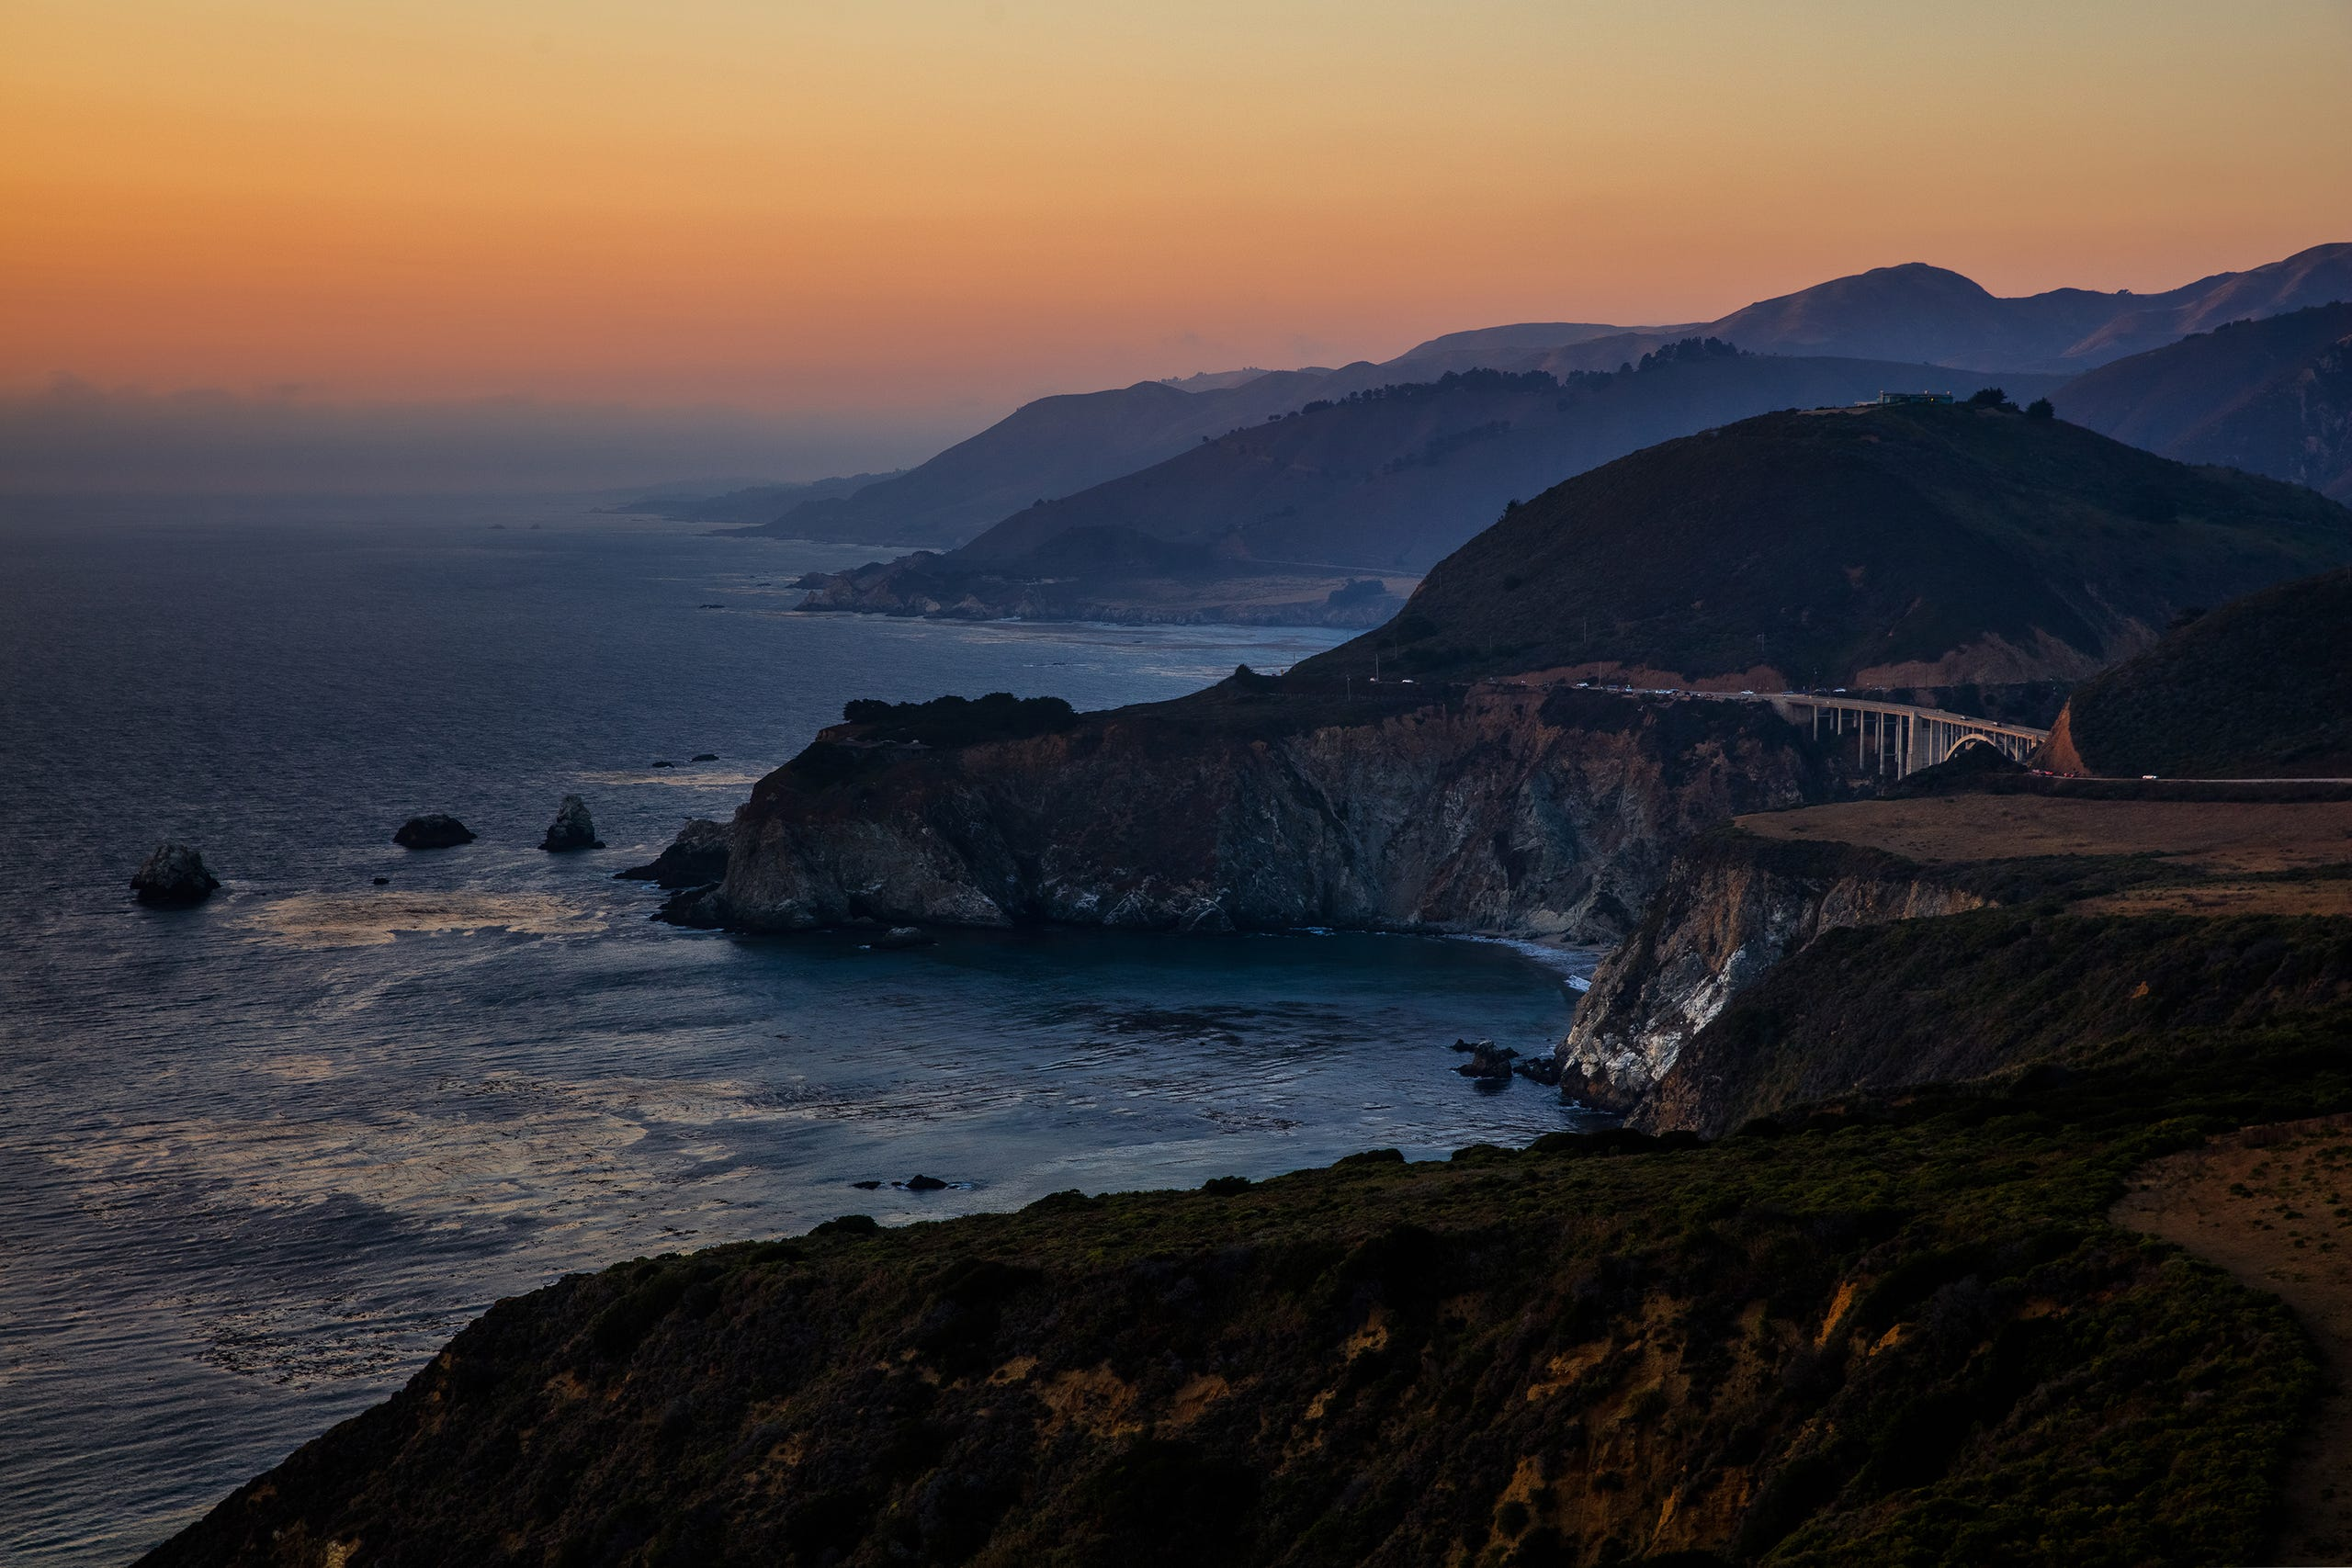 <strong>Big Sur, California:</strong> After the sunsets, the stars glow over the Big Sur coastline.